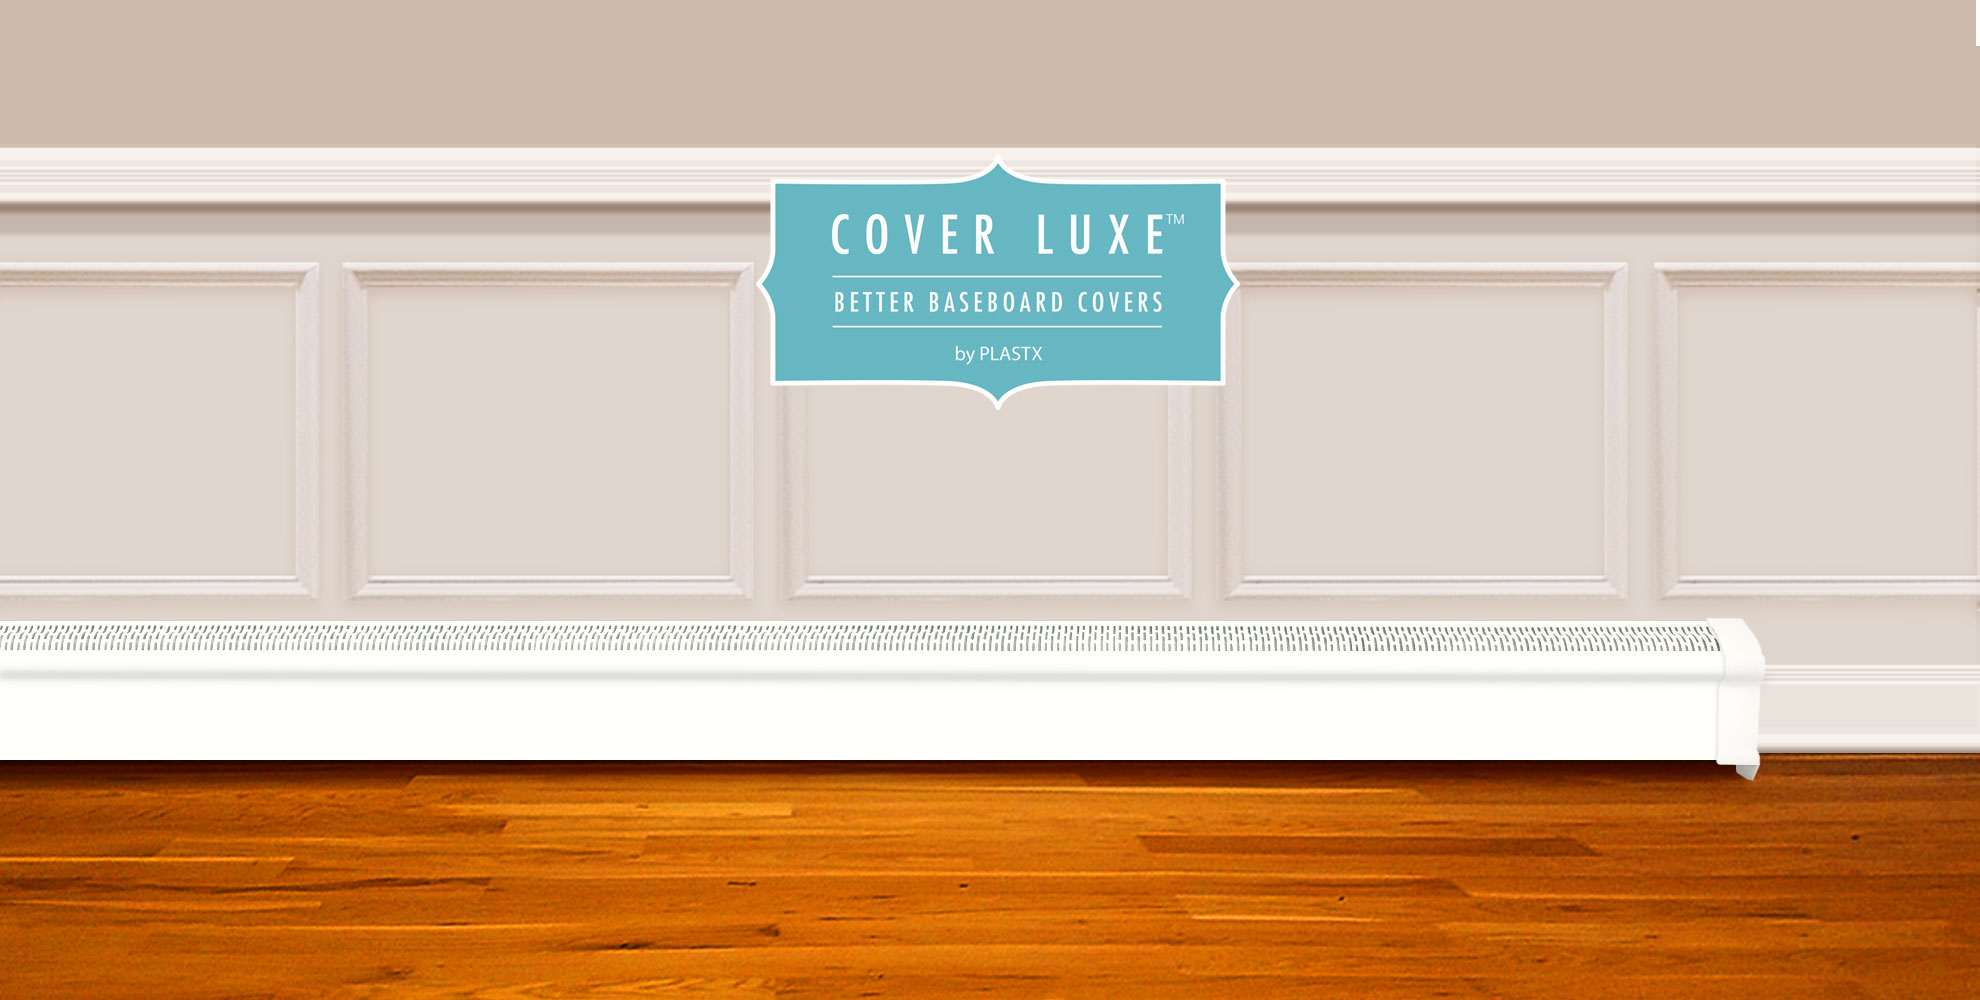 Cover Luxe The Better Baseboard Cover By Plastx